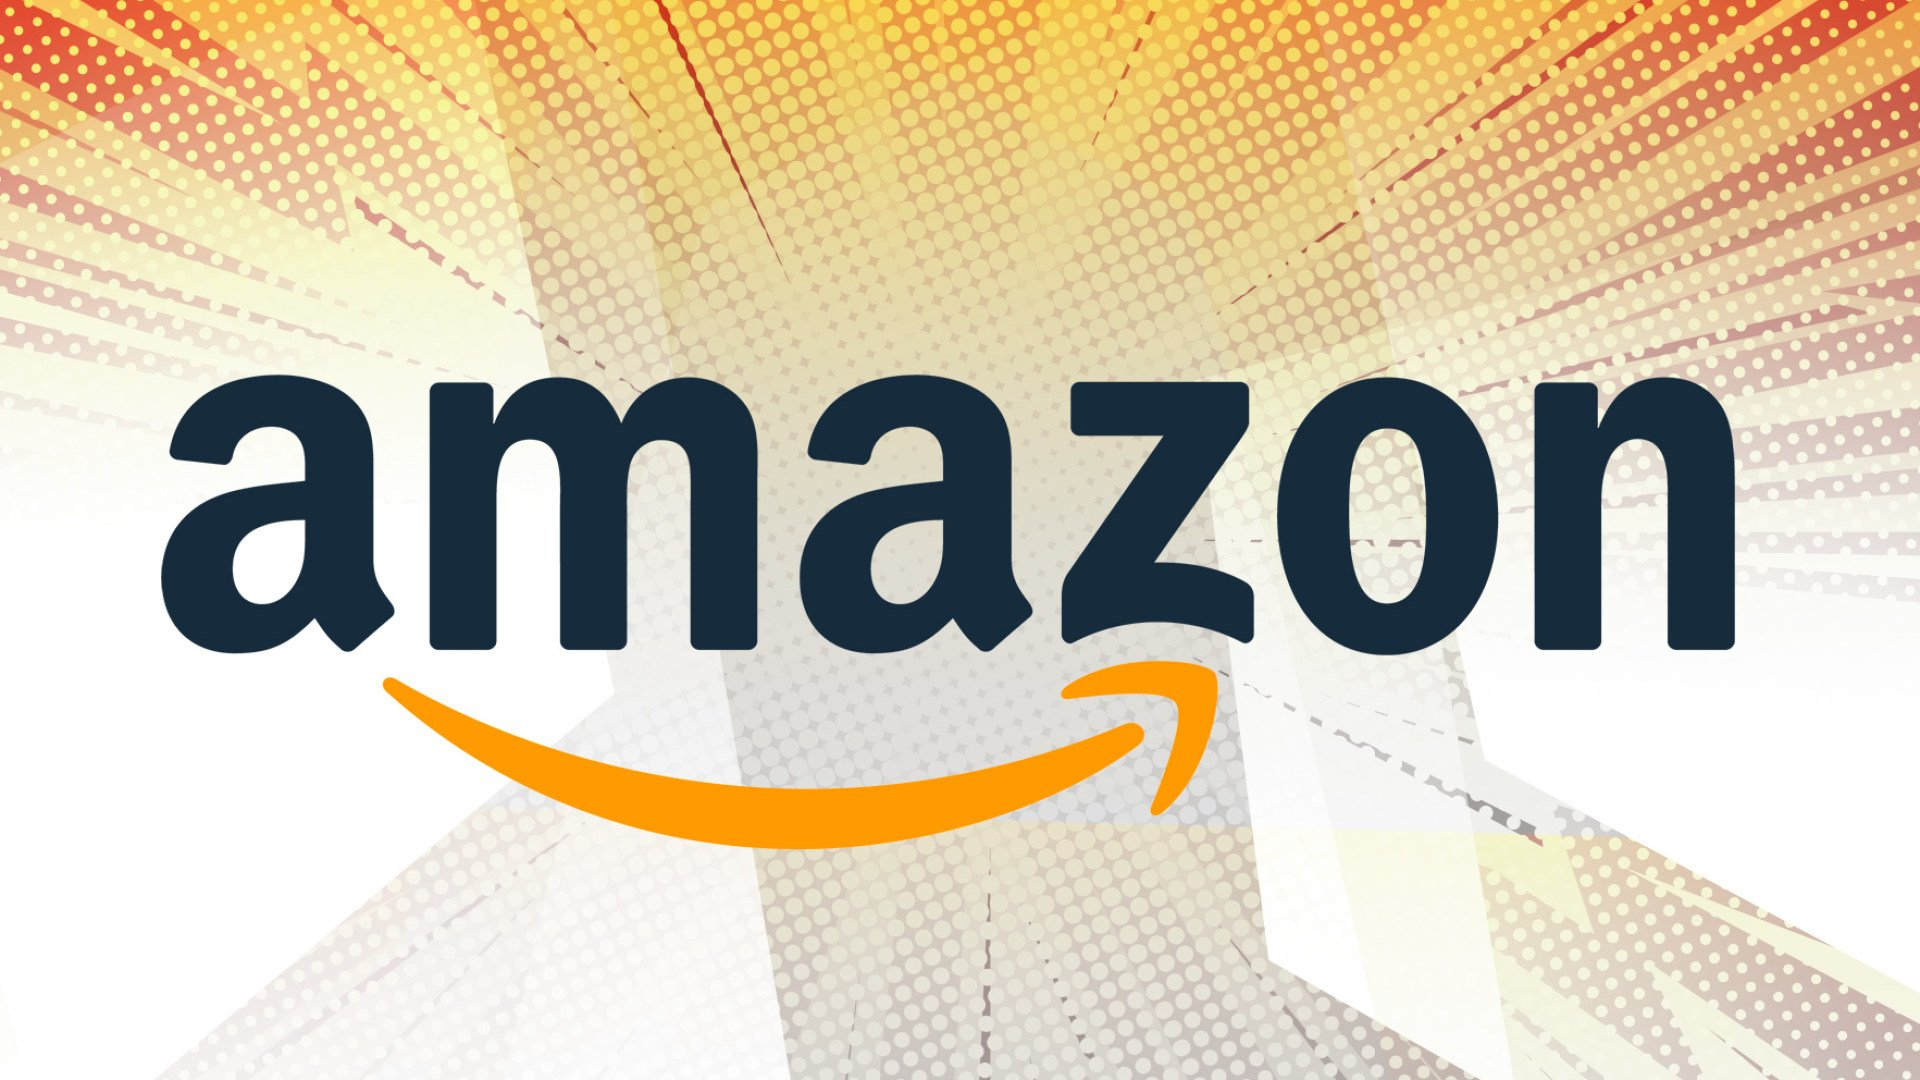 Amazon, Schnäppchen, Sonderangebote, sale, Rabattaktion, Deals, Angebot, Angebote, Flash, shopping, Rabatt, Blitzangebote, Deal, Nachlass, Amazon Logo, Blitz, Amazon.de